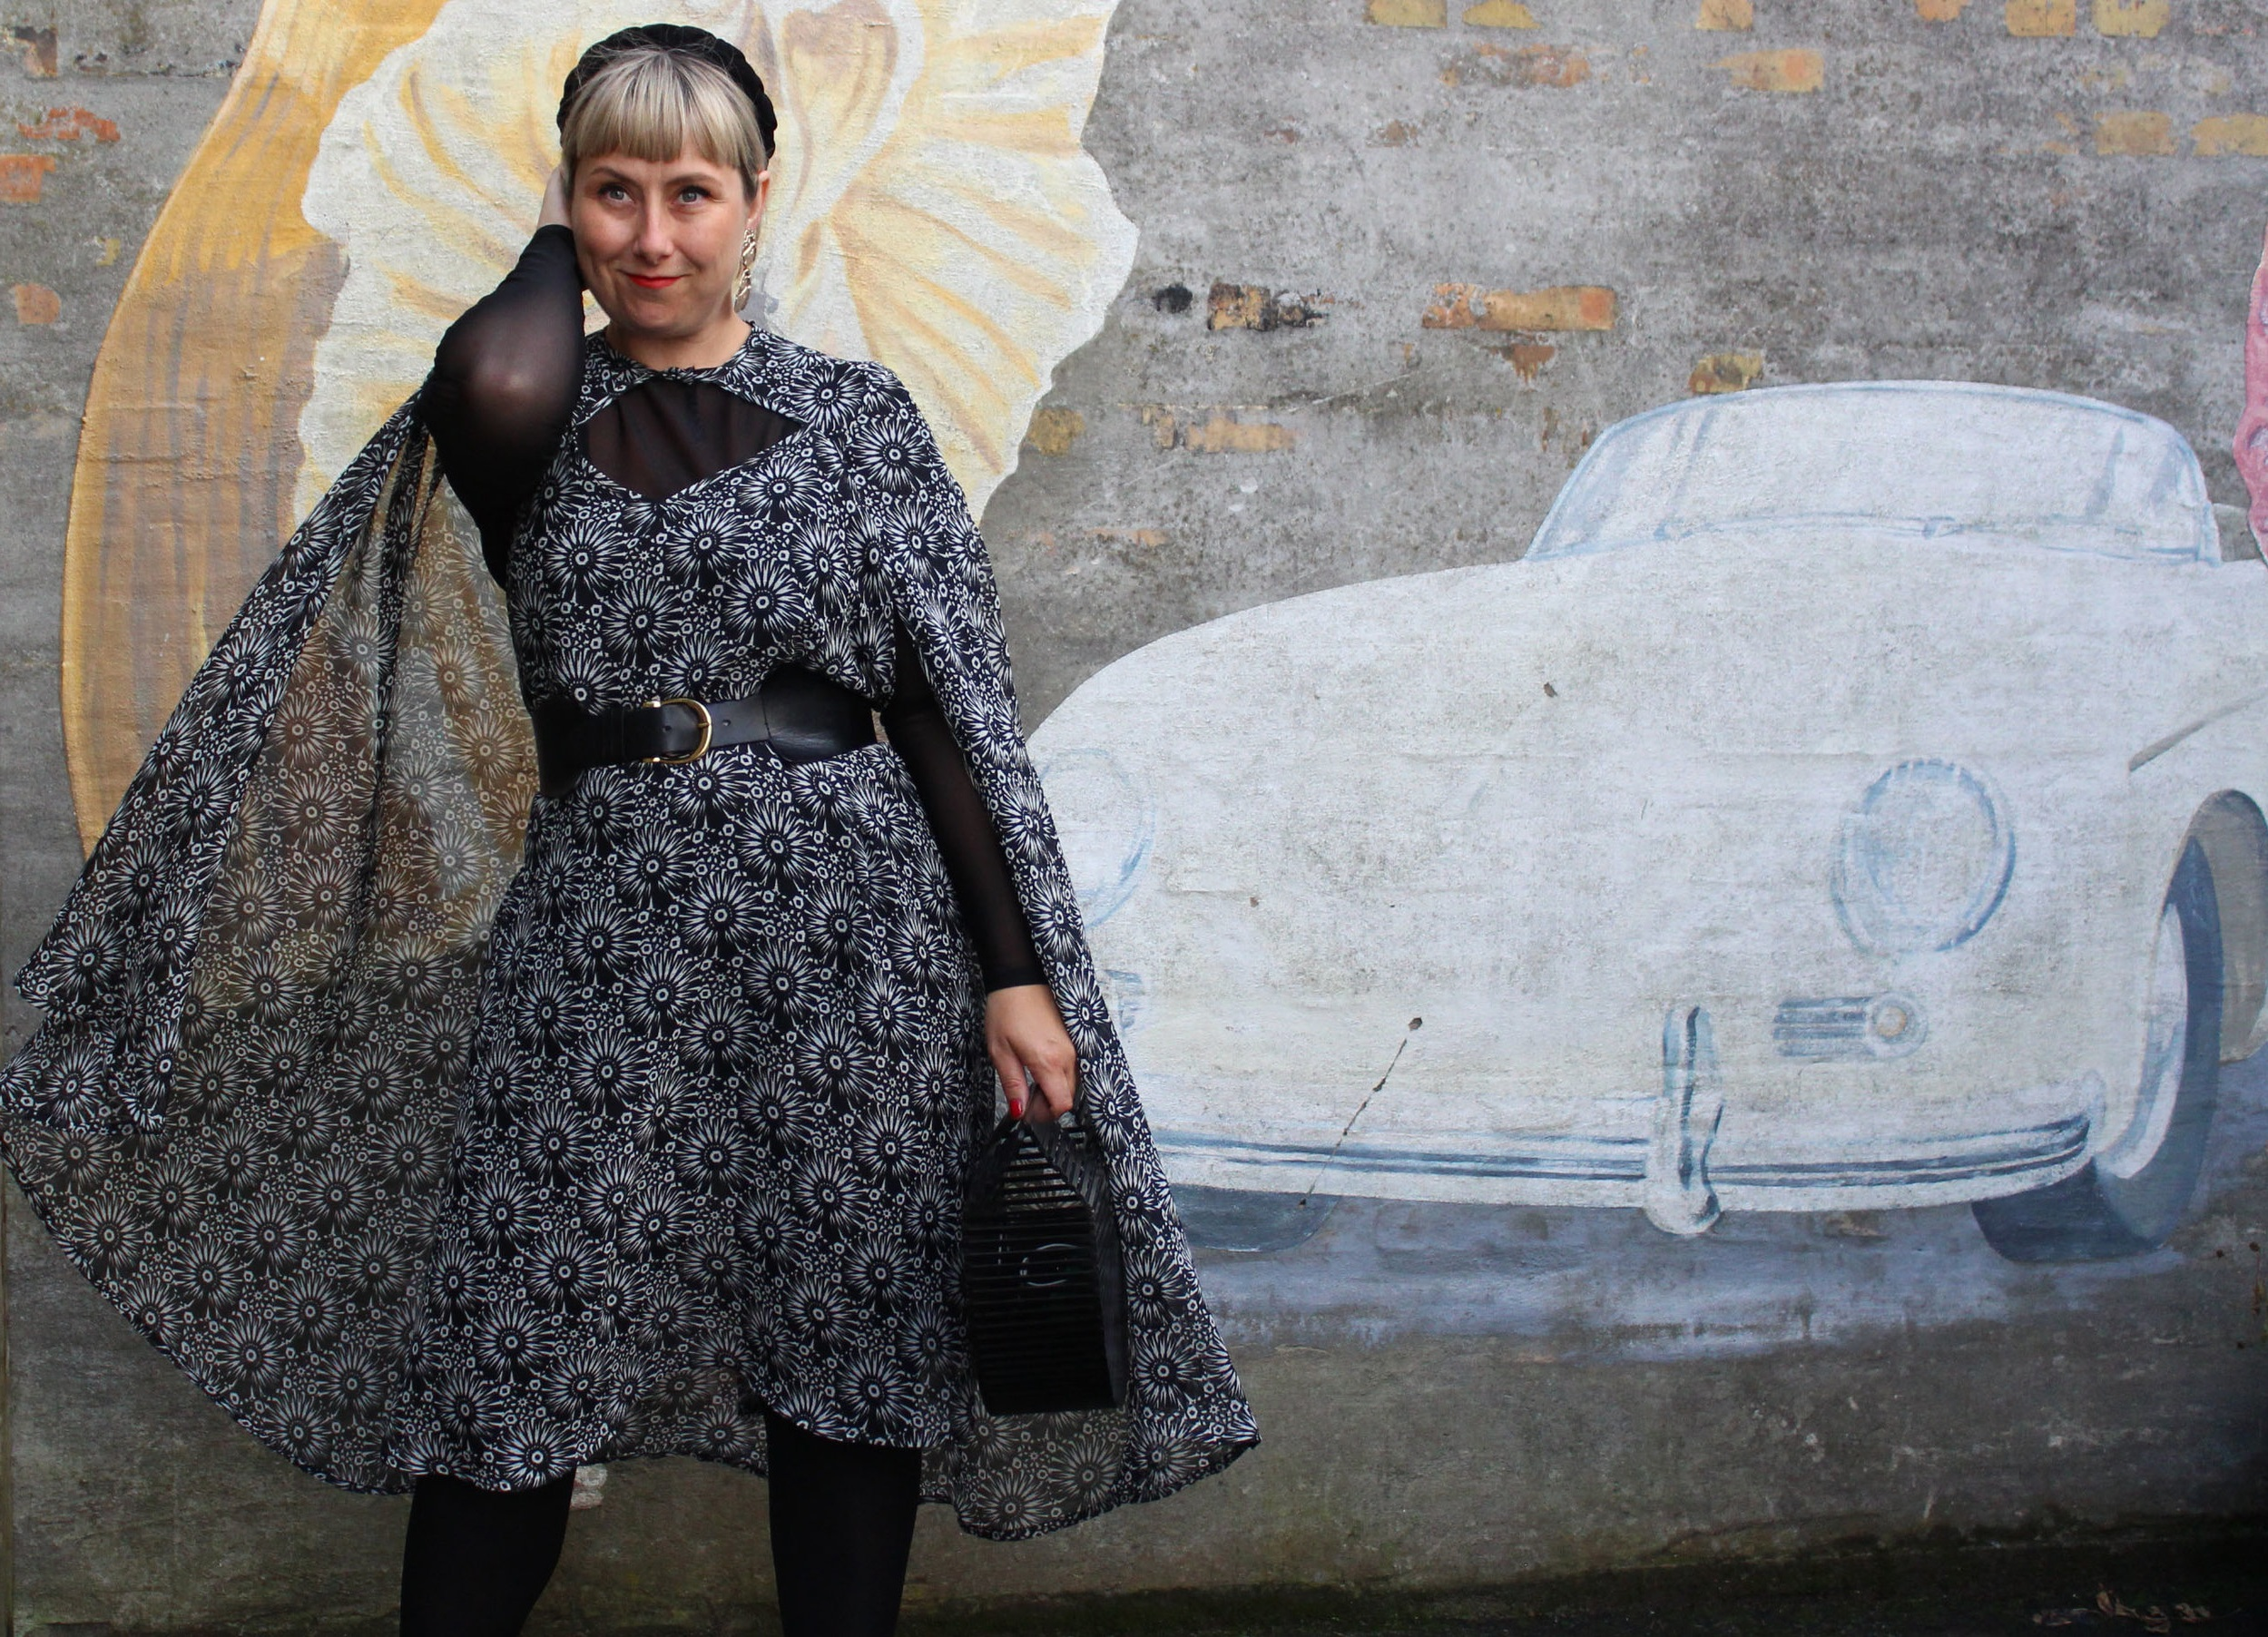 From overcoat to dress -